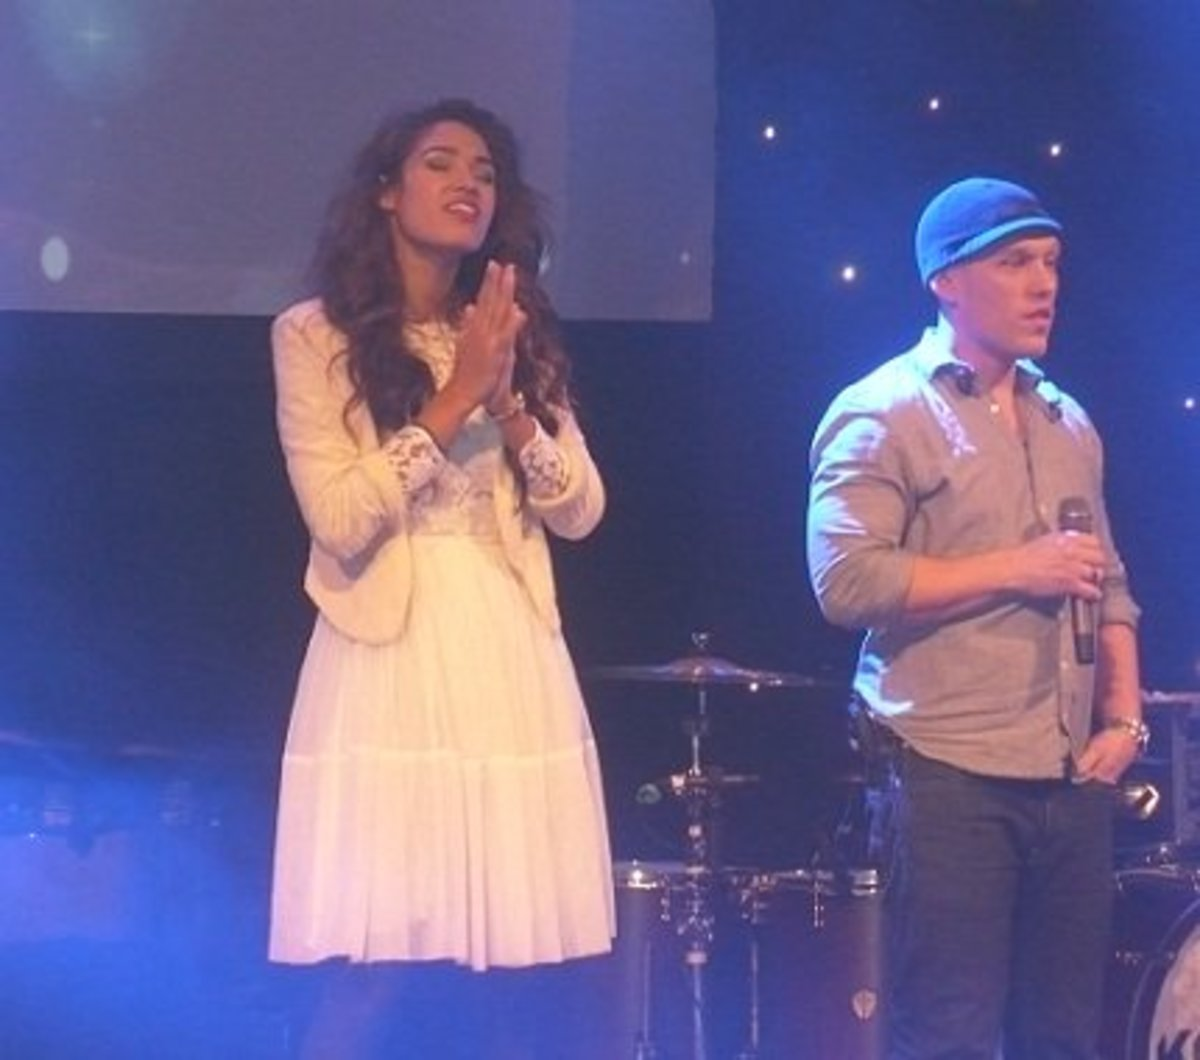 Moriah Peters performs with Kutless during a PULSE event in Bismarck, North Dakota.